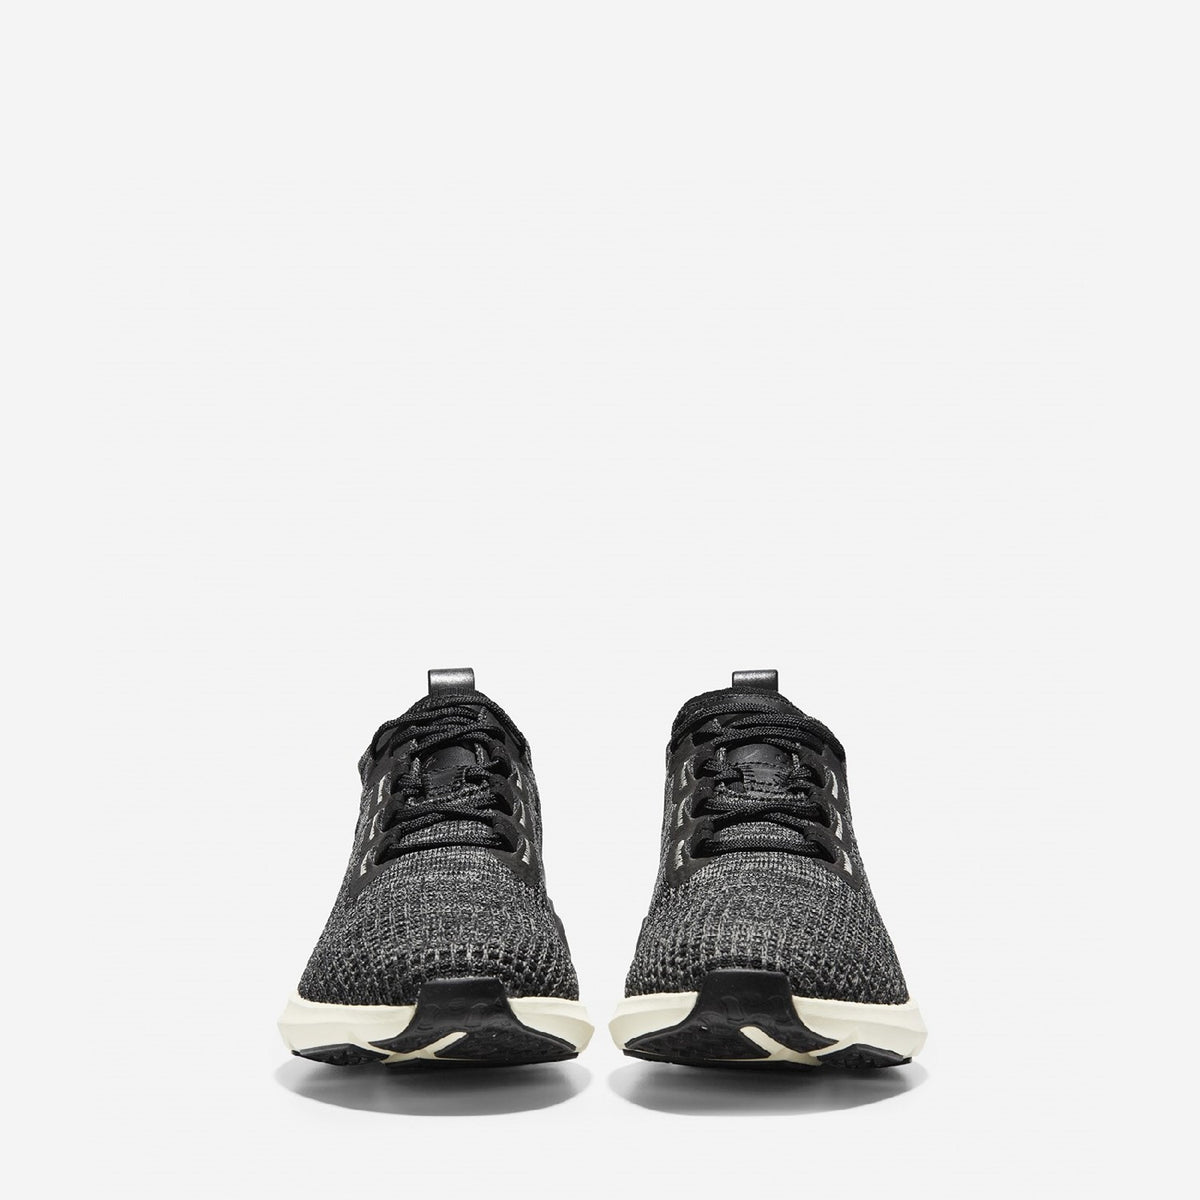 Men's ZERØGRAND All-Day Lace Up Runner Black/Gunmetal Knit